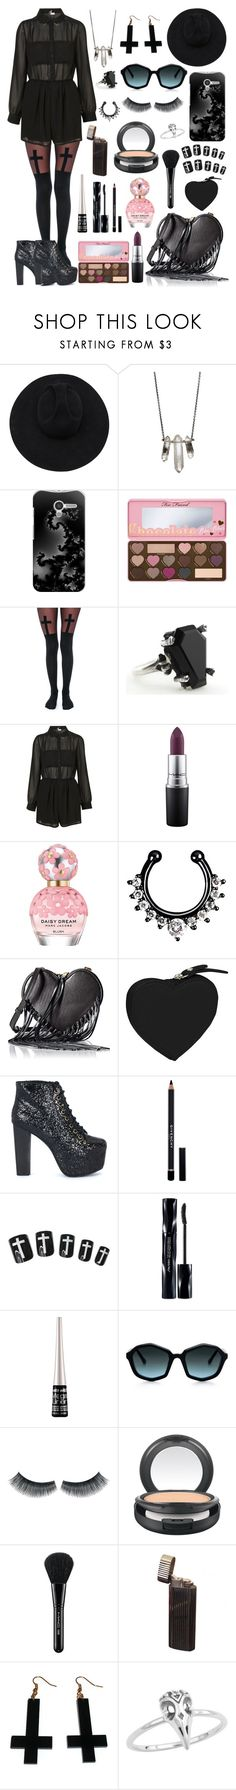 """Dark fashion style #81"" by xblackbettyx ❤ liked on Polyvore featuring Gladys Tamez Millinery, ZoÃ« Chicco, Casetify, Too Faced Cosmetics, Leg Avenue, MAC Cosmetics, Marc Jacobs, Rebecca Minkoff, Clava and Jeffrey Campbell"